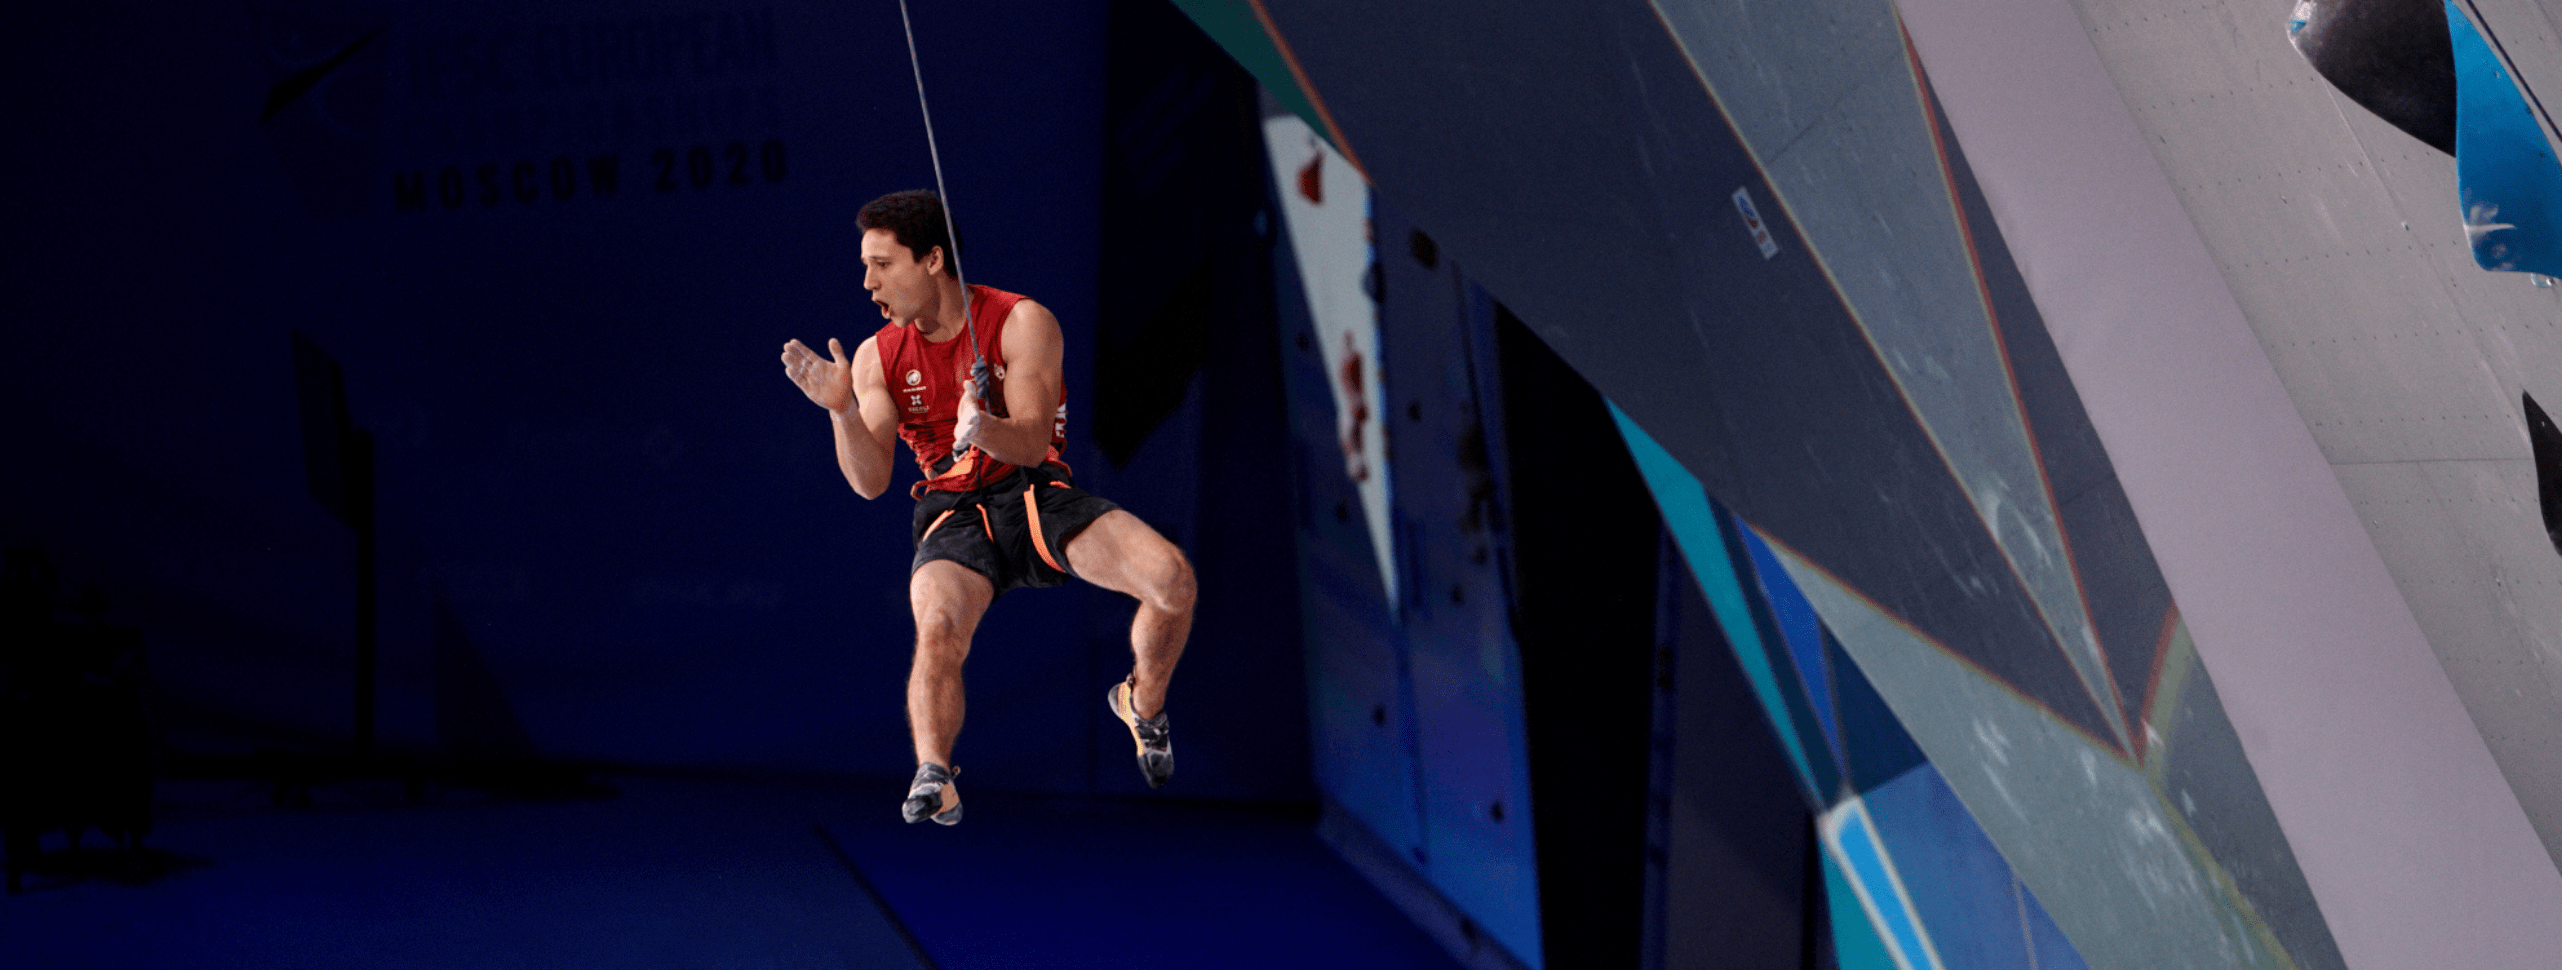 WHERE TO WATCH THE IFSC COMBINED EUROPEAN CHAMPIONSHIPS